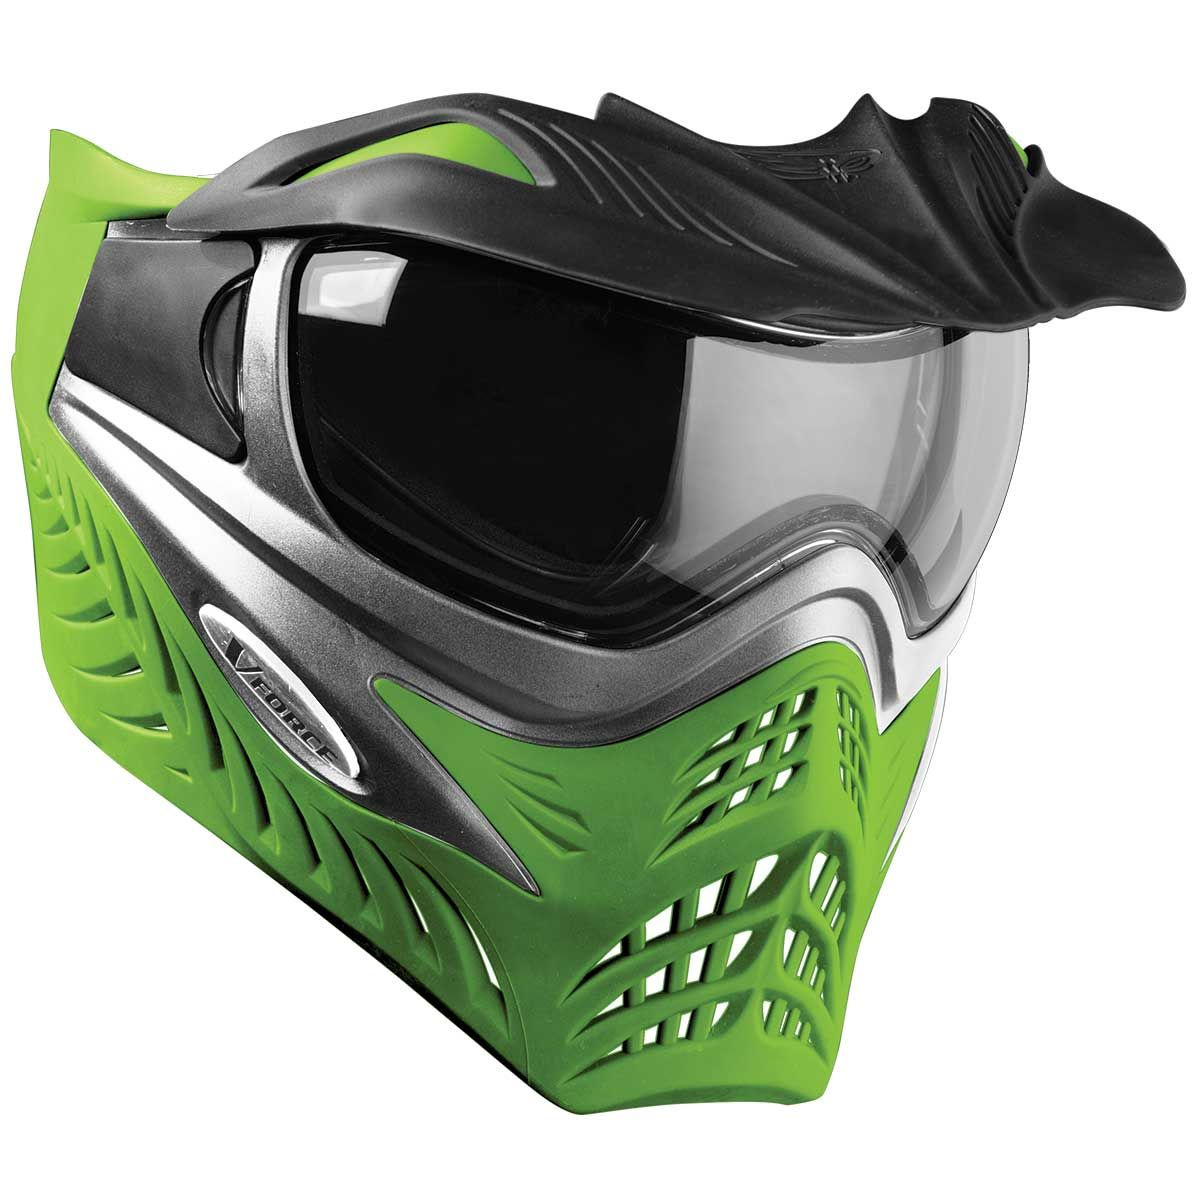 V Force Grill Paintball Mask Goggle Grey On Lime Green Paintball Mask Force Paintball Mask Lime Green Paintball